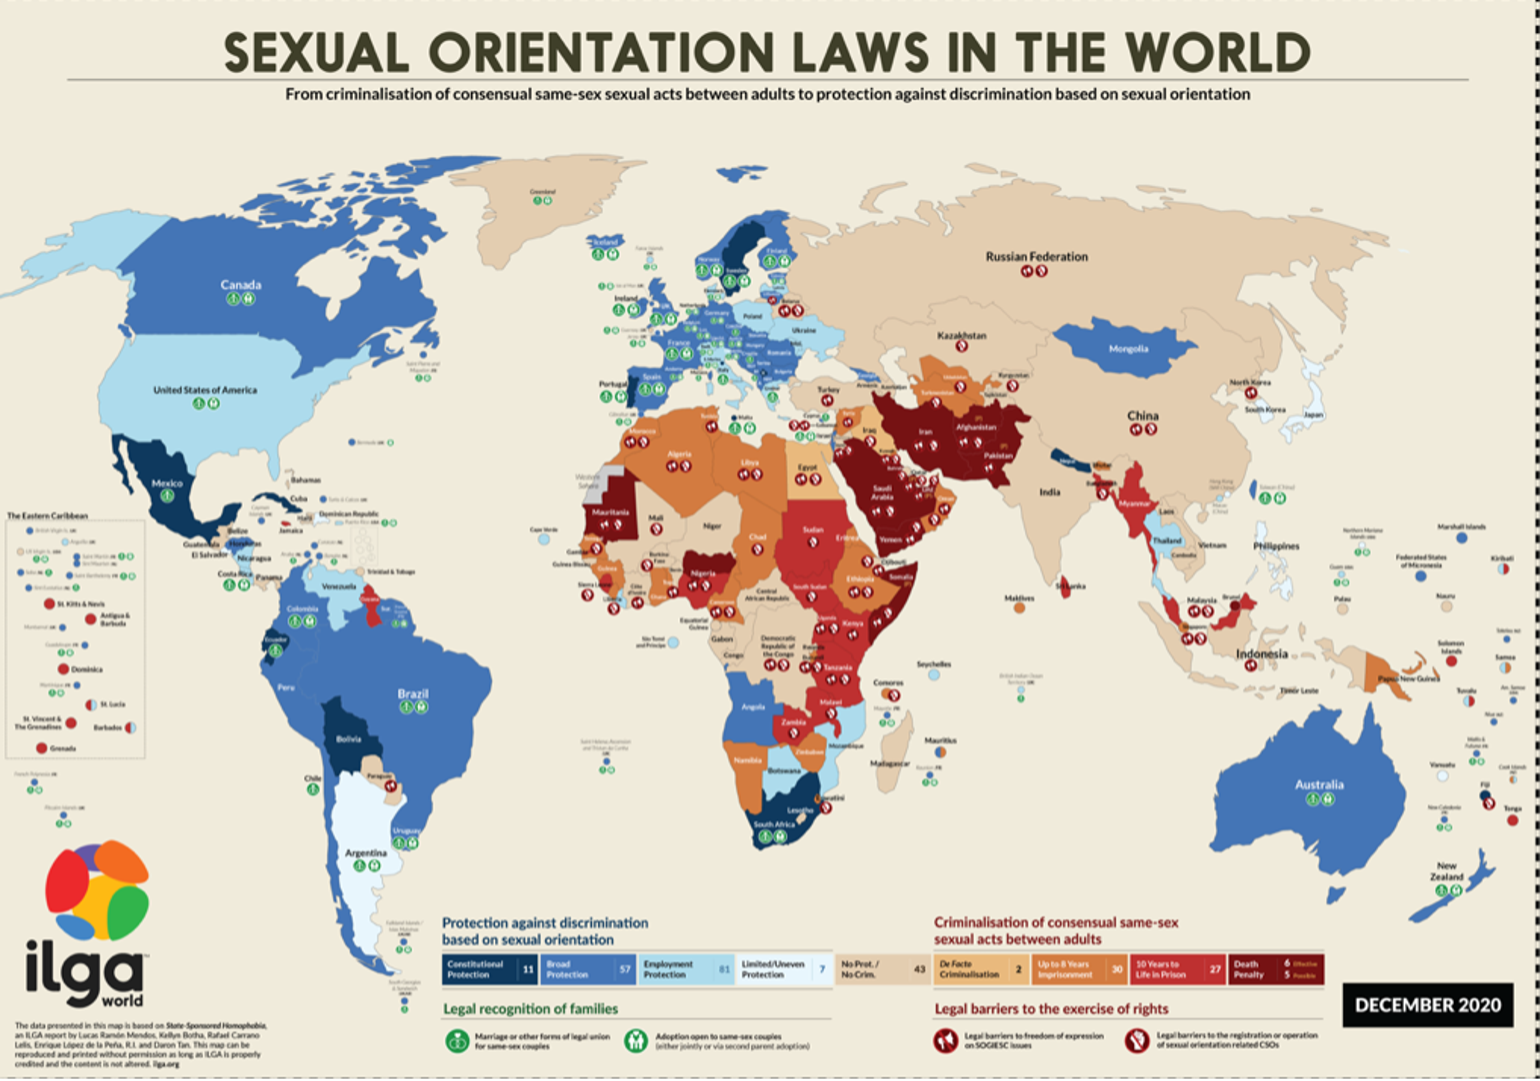 Color-coded map of sexual orientation laws in the world, from criminalization of consensual same-sex acts between adults to protection against discrimination based on sexual orientation.